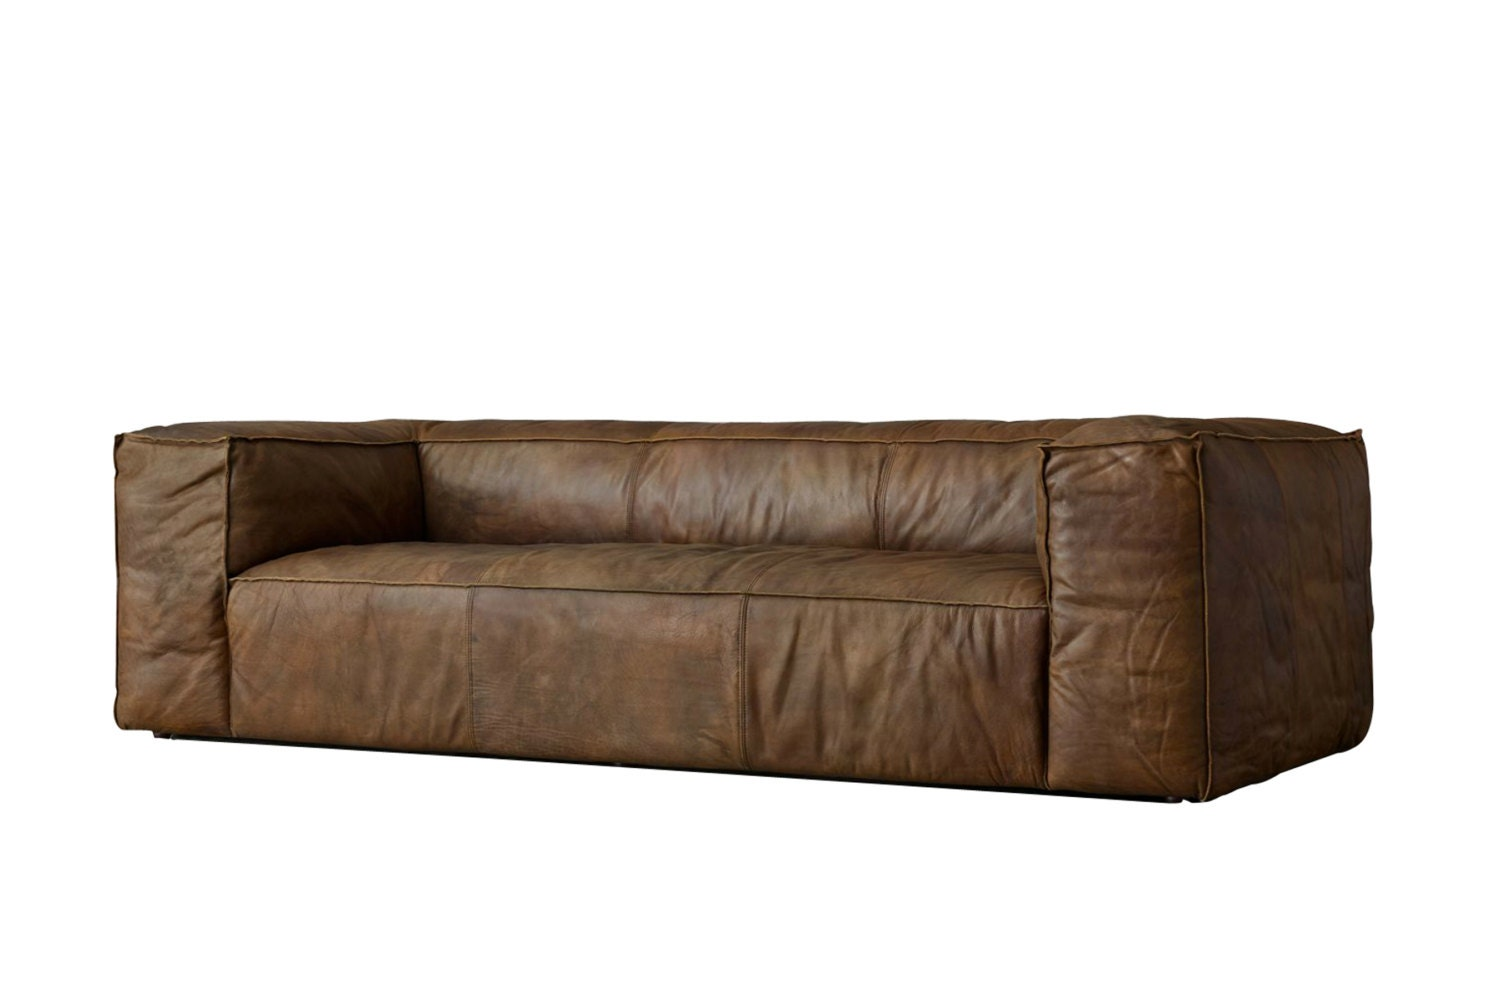 Rufus Whiskey Leather Sofa Tag By Tandem Arbor By